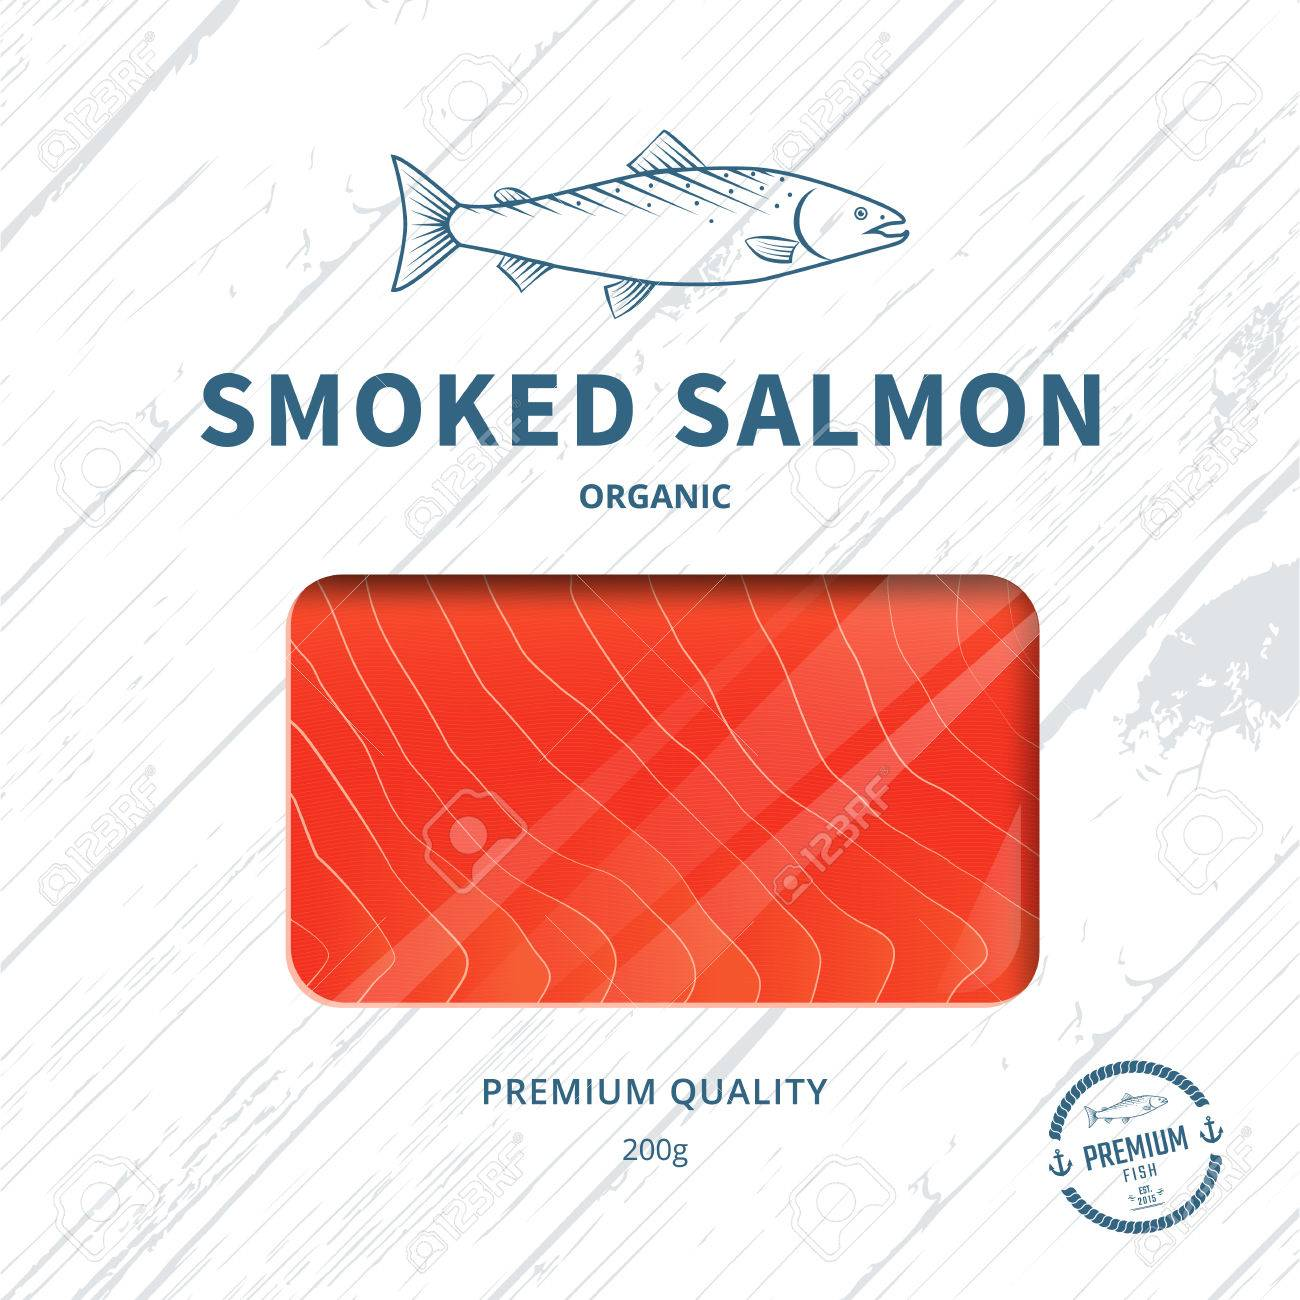 packaging design template for smoked salmon fish package royalty